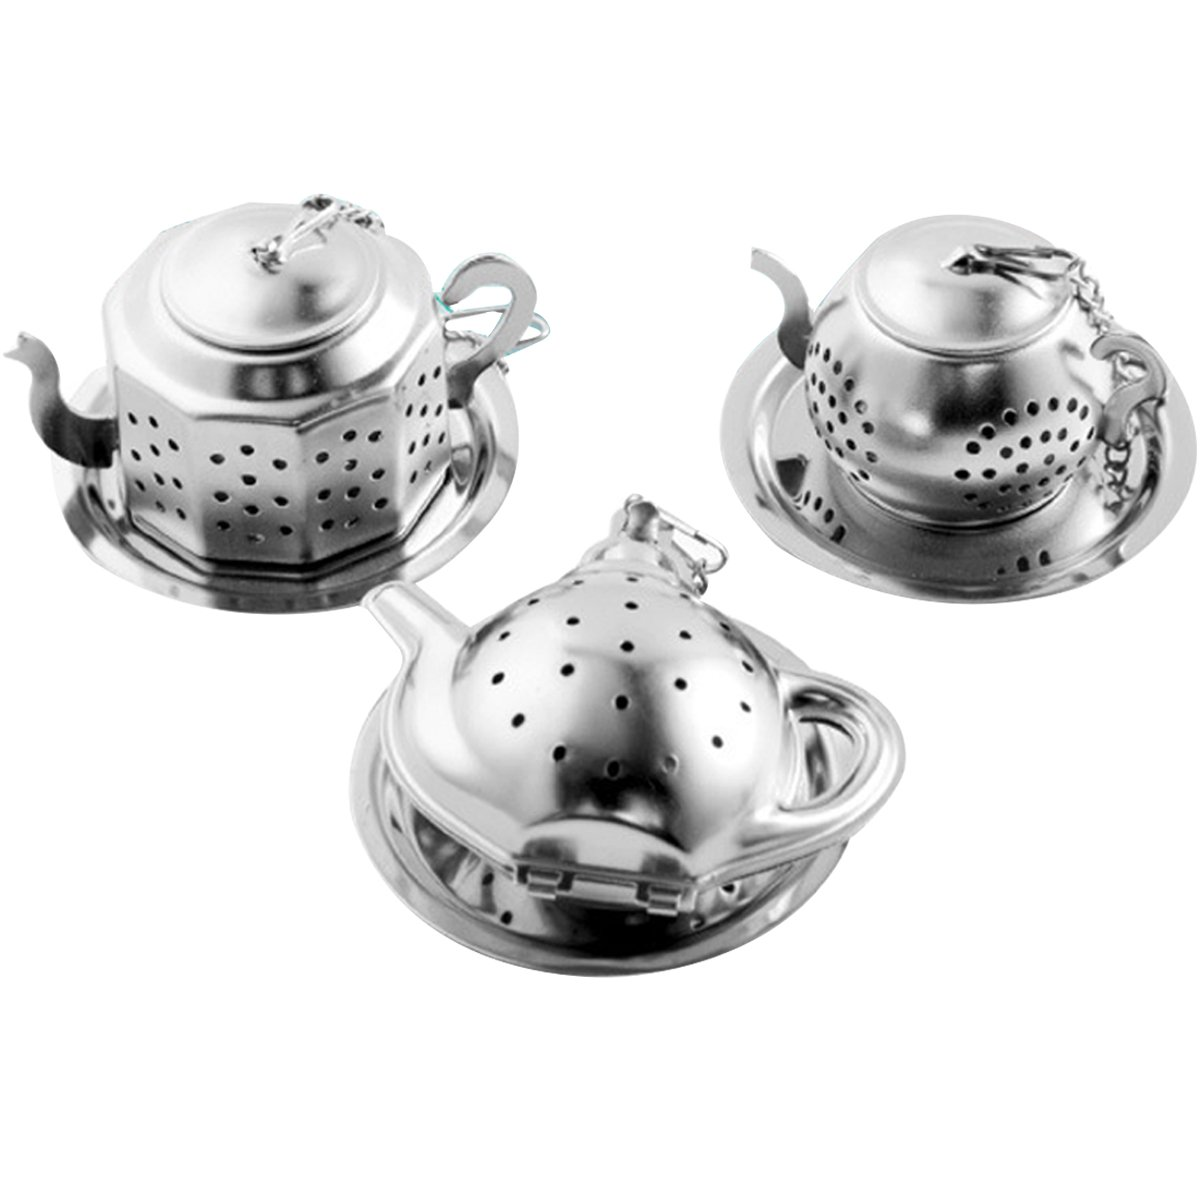 Sherry Tea Infuser Stainless Steel Loose Leaf Tea Strainer with Chain and Drip Trays Premium Tea Filter Mini TeaPot(Pack of 3)